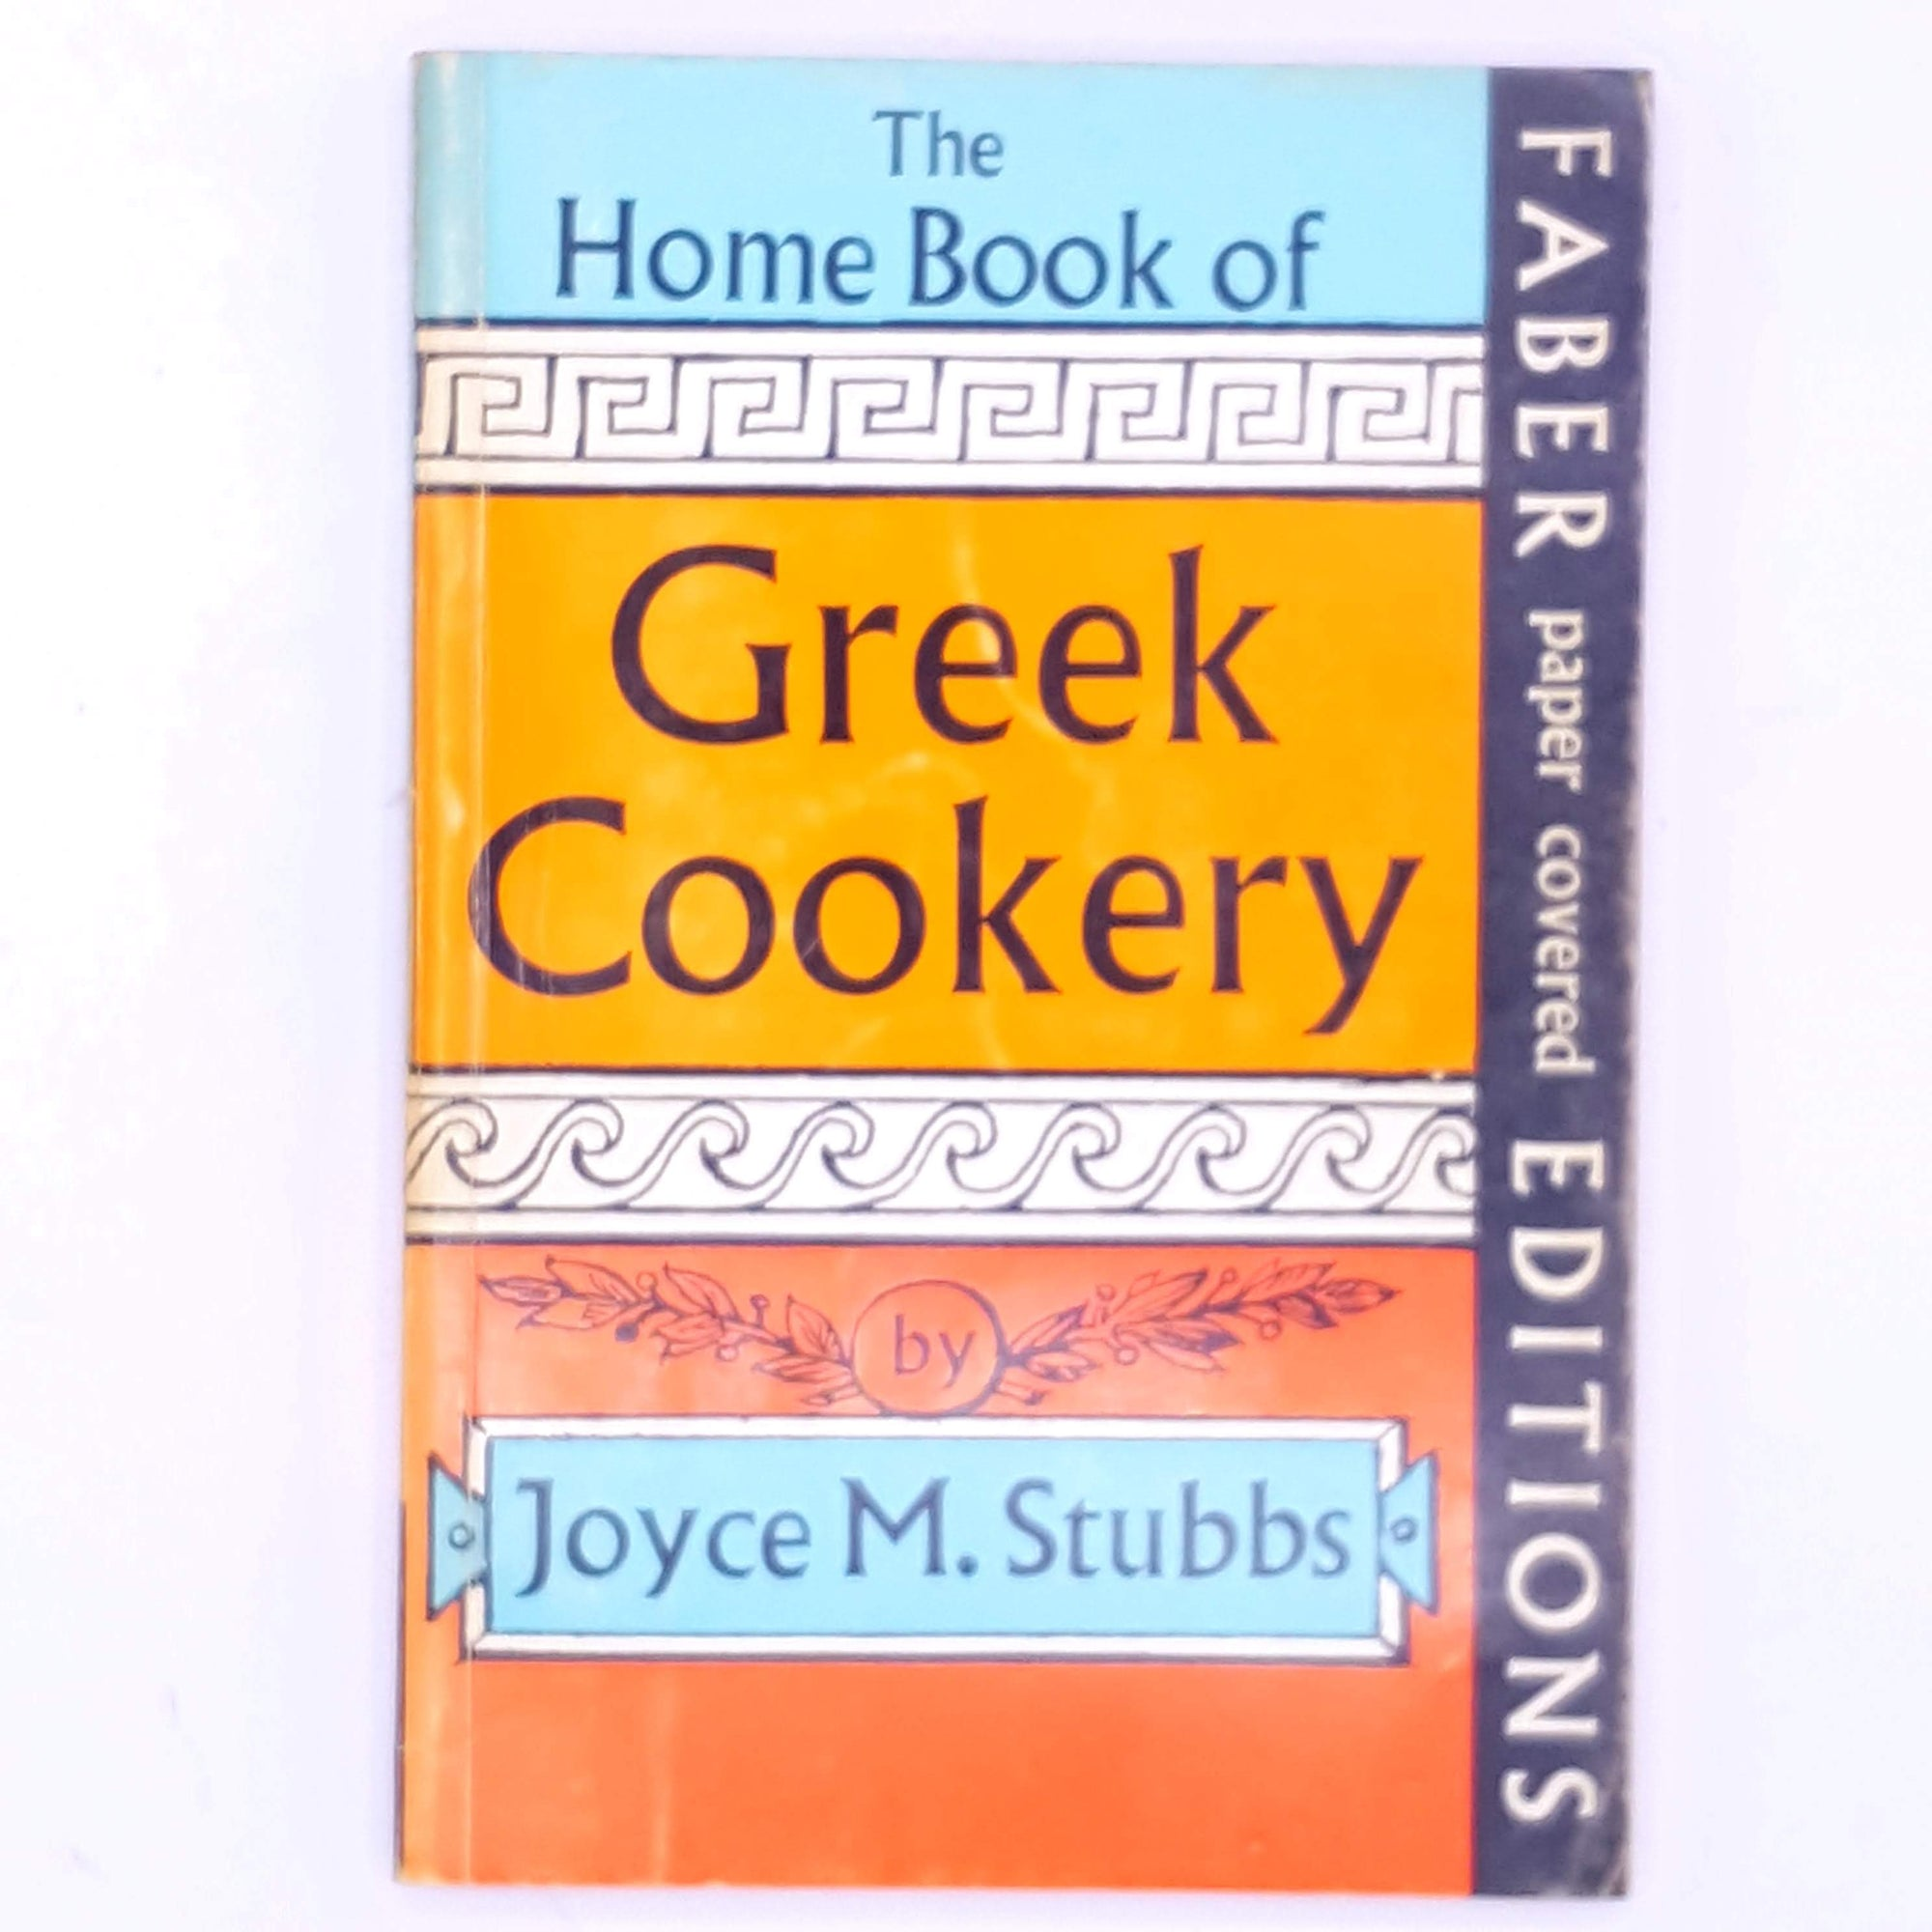 The Home Book of Greek Cookery by Joyce M Stubbs